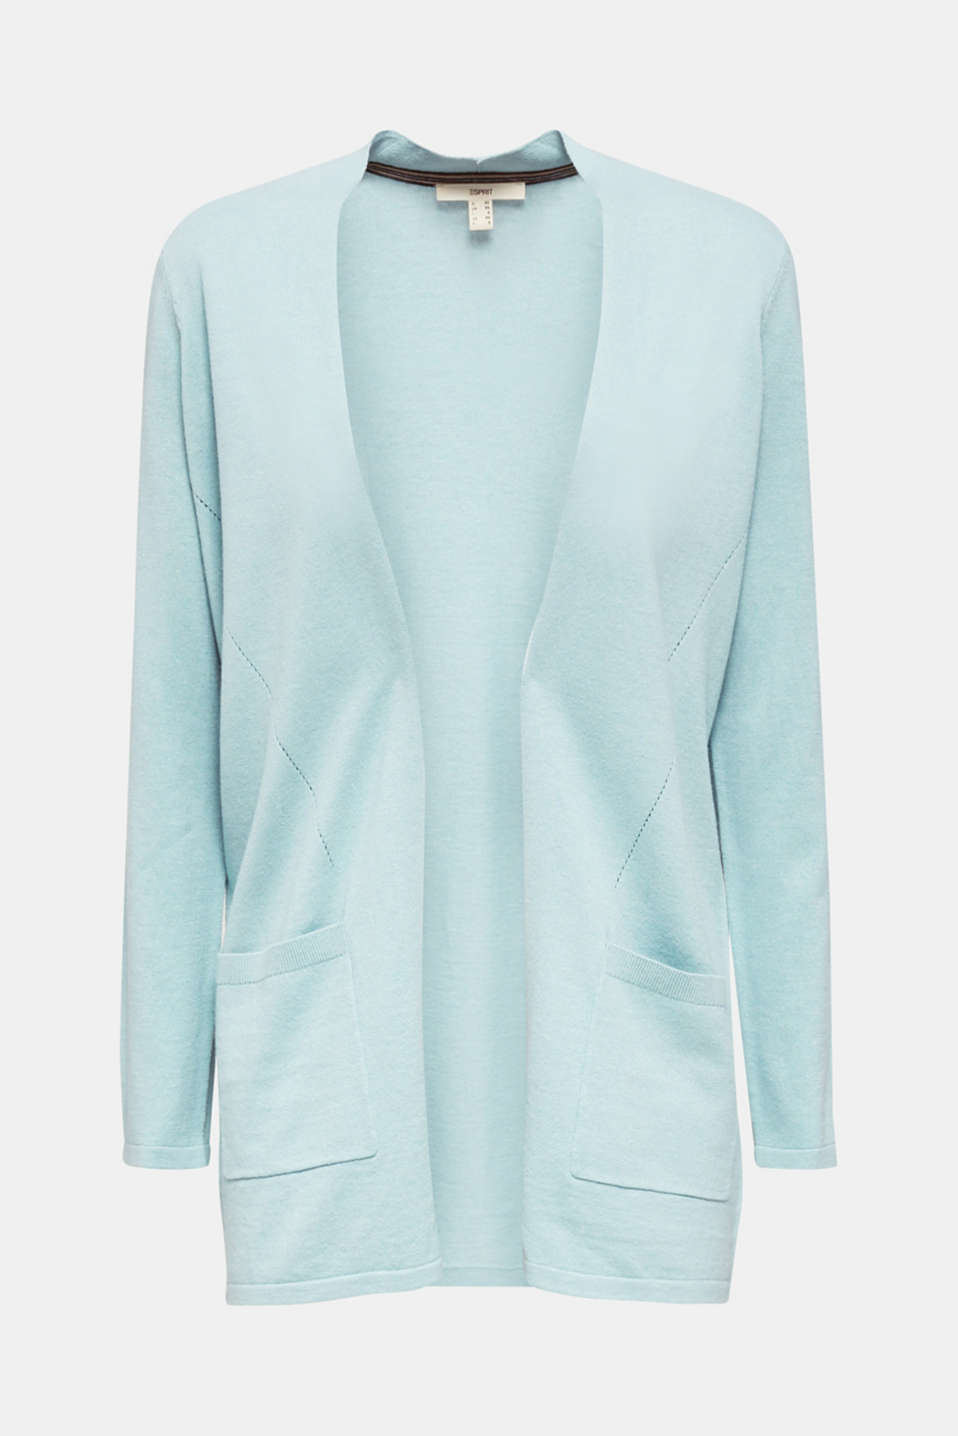 With linen: open cardigan with open-work pattern details, LIGHT AQUA GREEN, detail image number 5